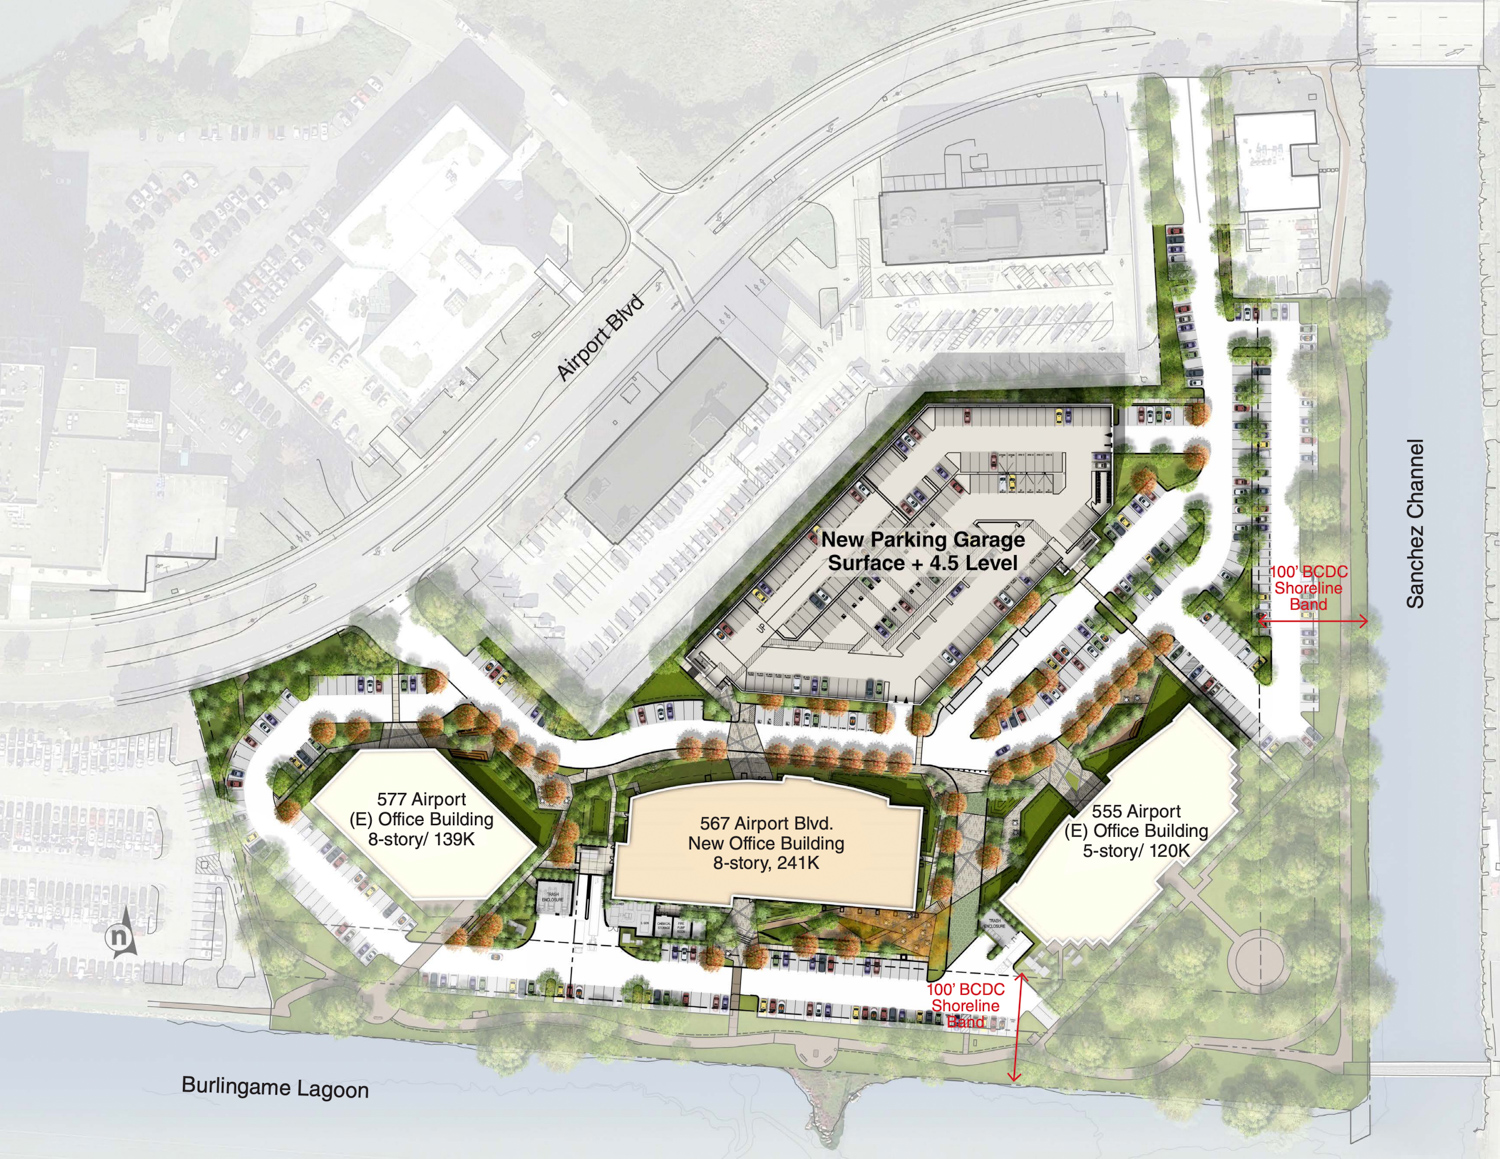 The Peninsula Innovation Point proposed master plan, design by DES Architects